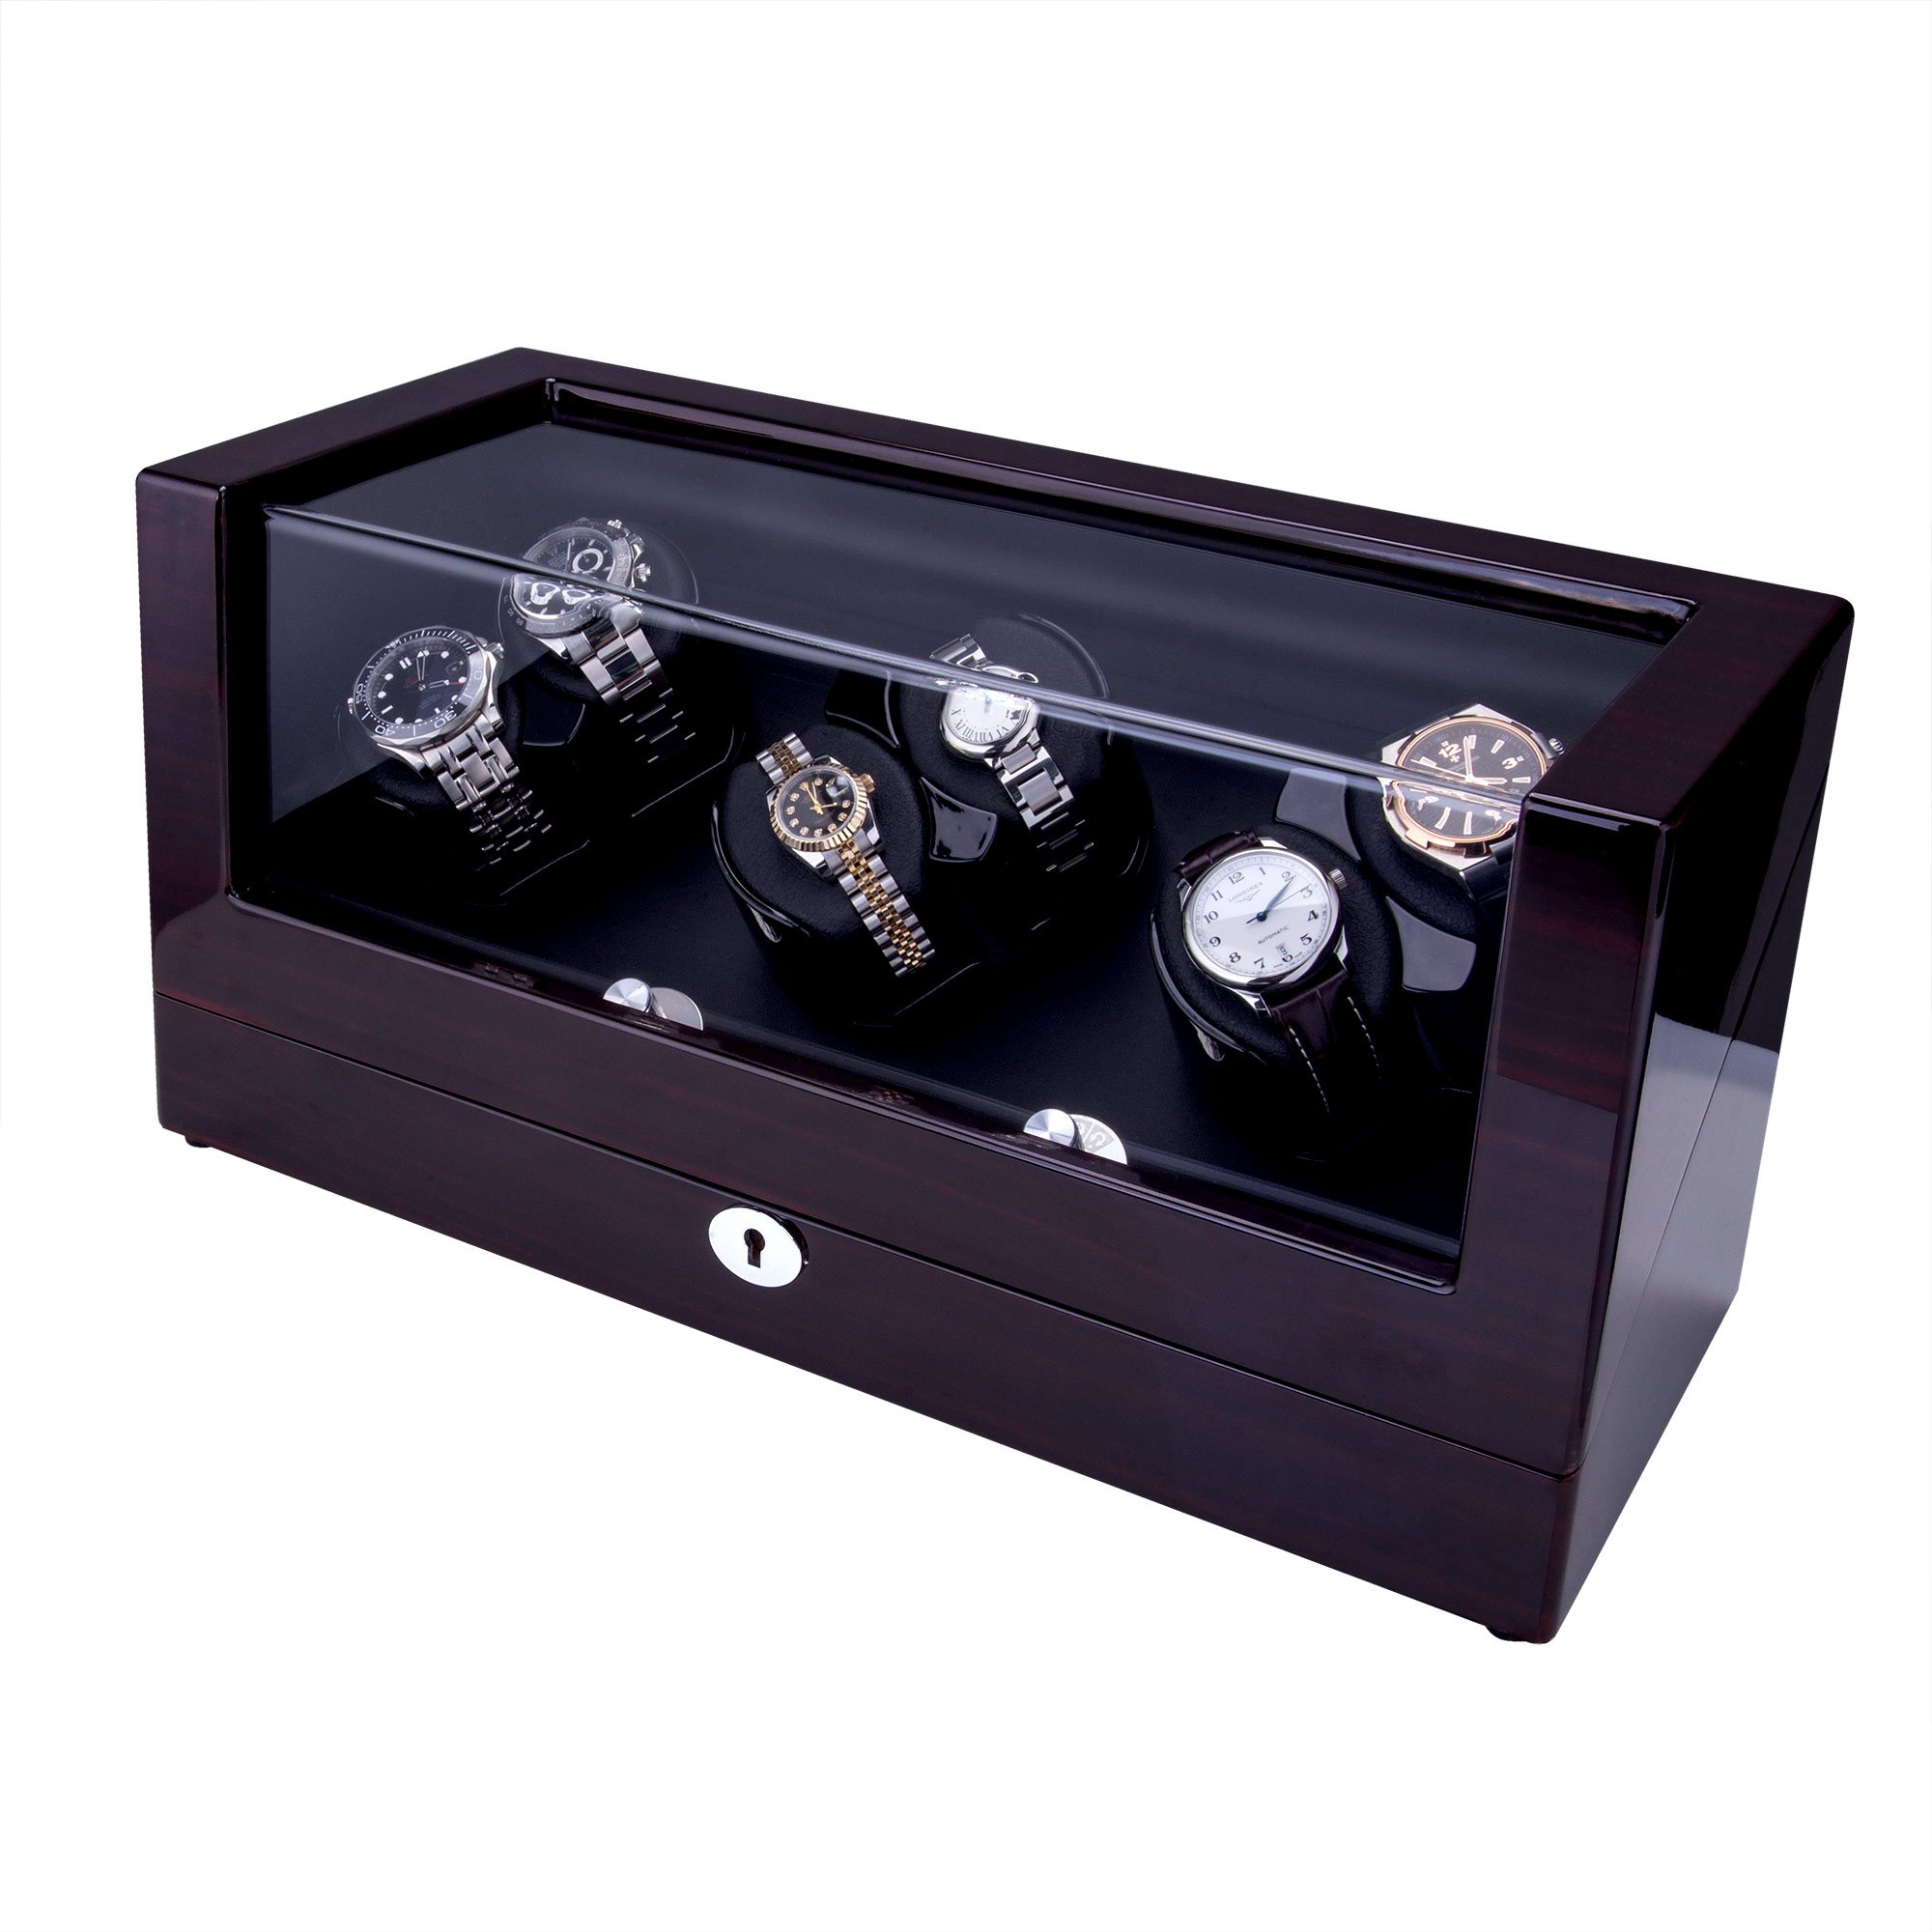 TRIPLE TREE Watch Winder [Newly Upgraded], With Soft and Flexible Watch Pillows, Six Winding Spaces, Wooden Shell, Powered by Japanese Motor, For PP, AP, VC, Rolex Automatic Watches